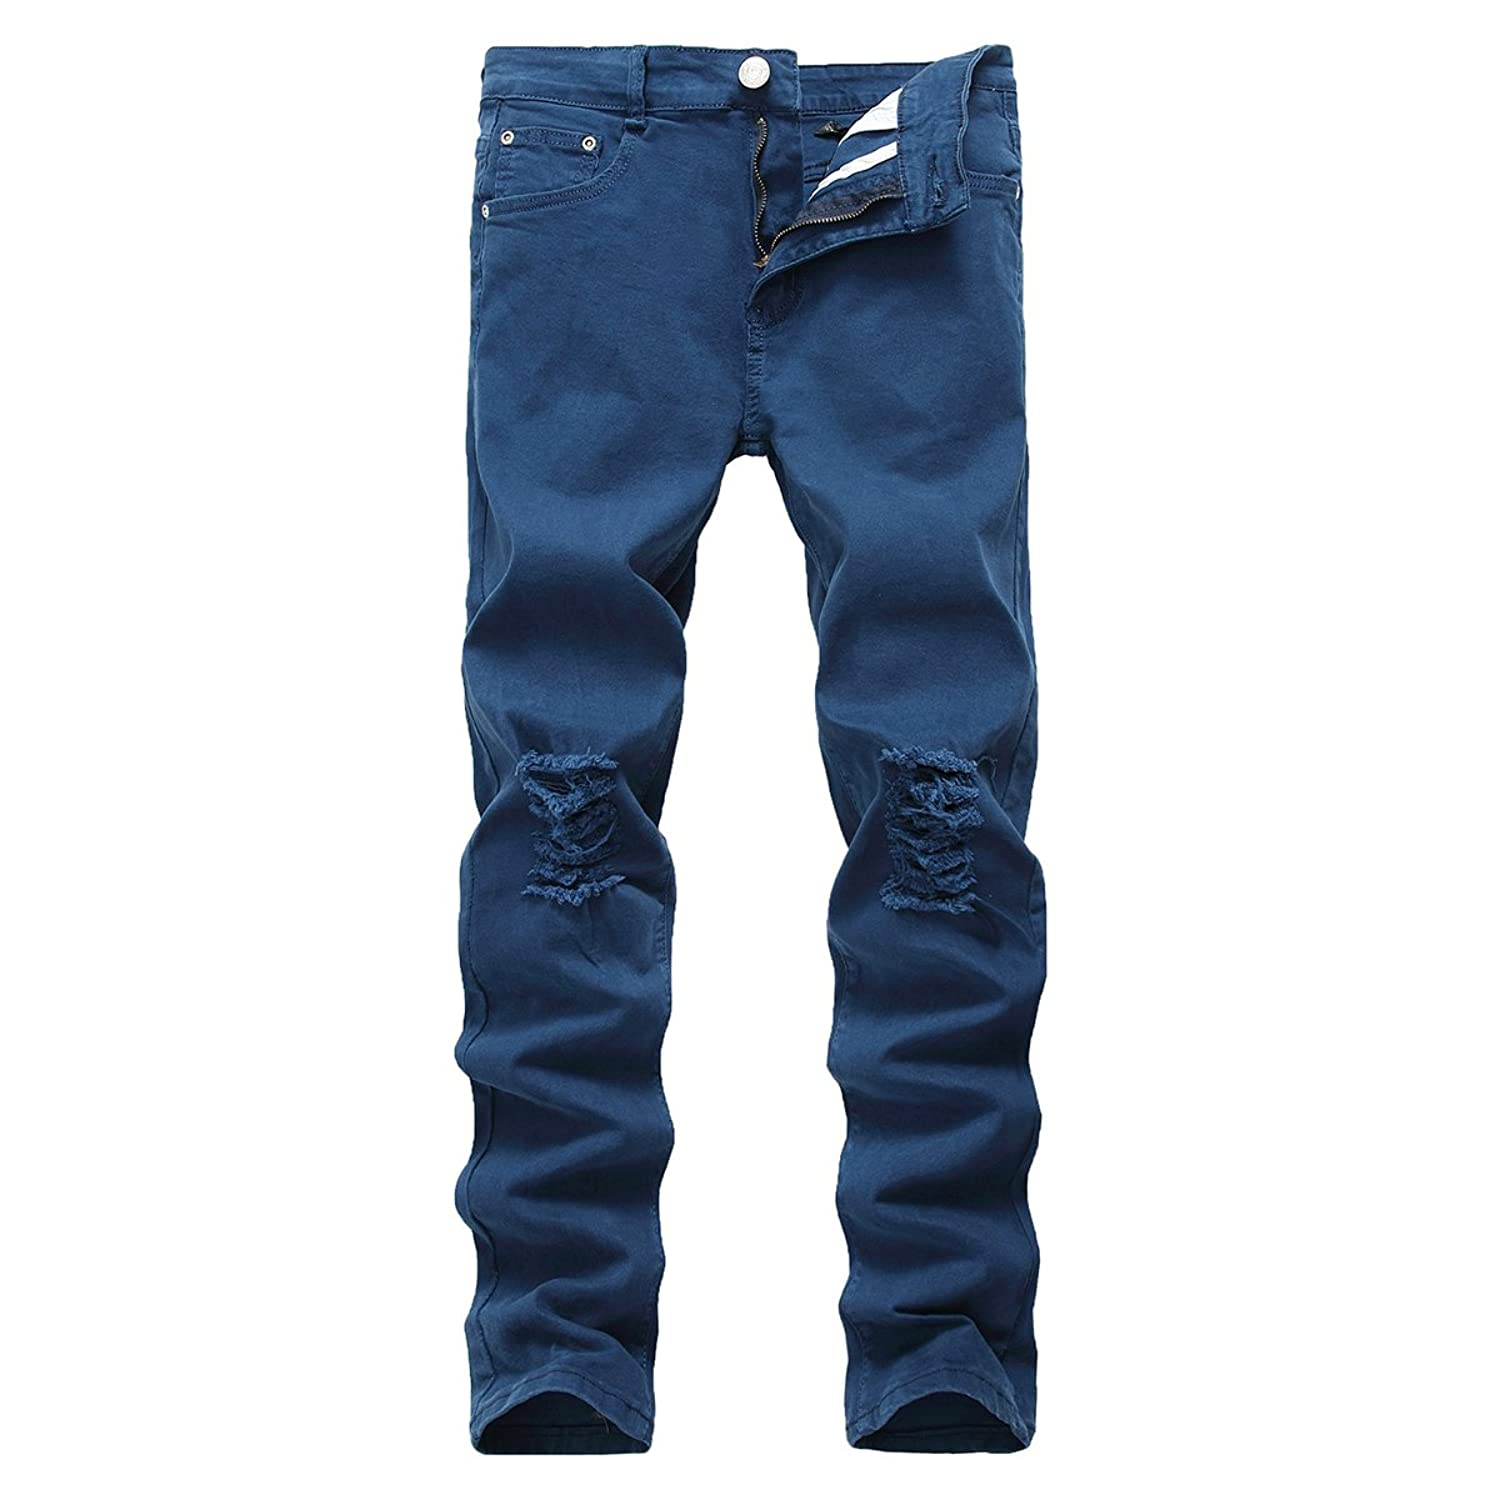 Pishon Men's Distressed Jeans Casual Solid Straight Leg Stretch Skinny Ripped Jeans by Pishon